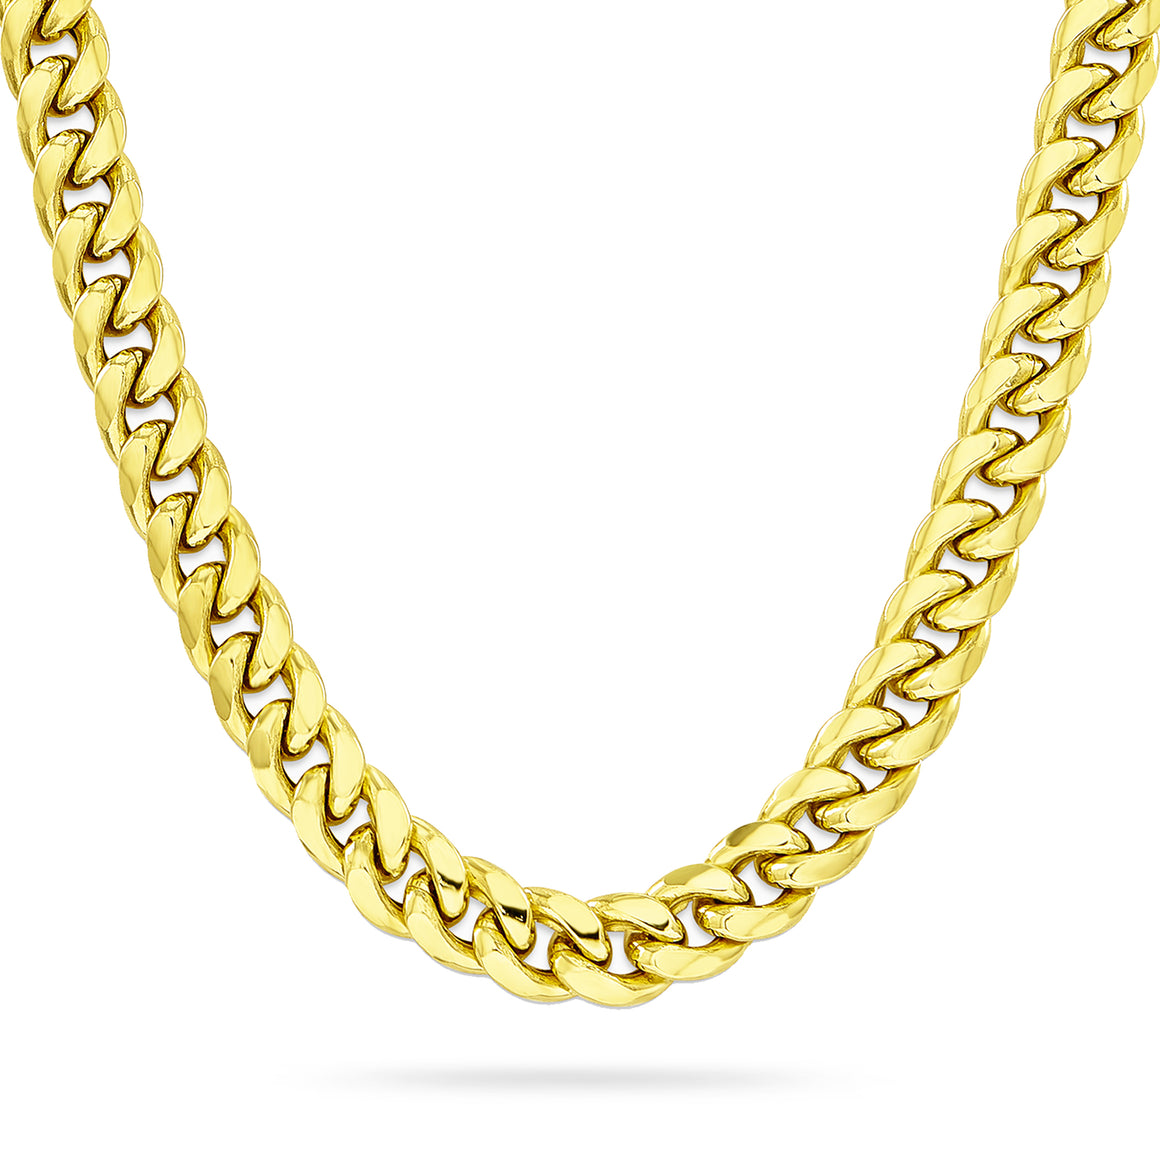 8mm Cuban Link Chain, Gold